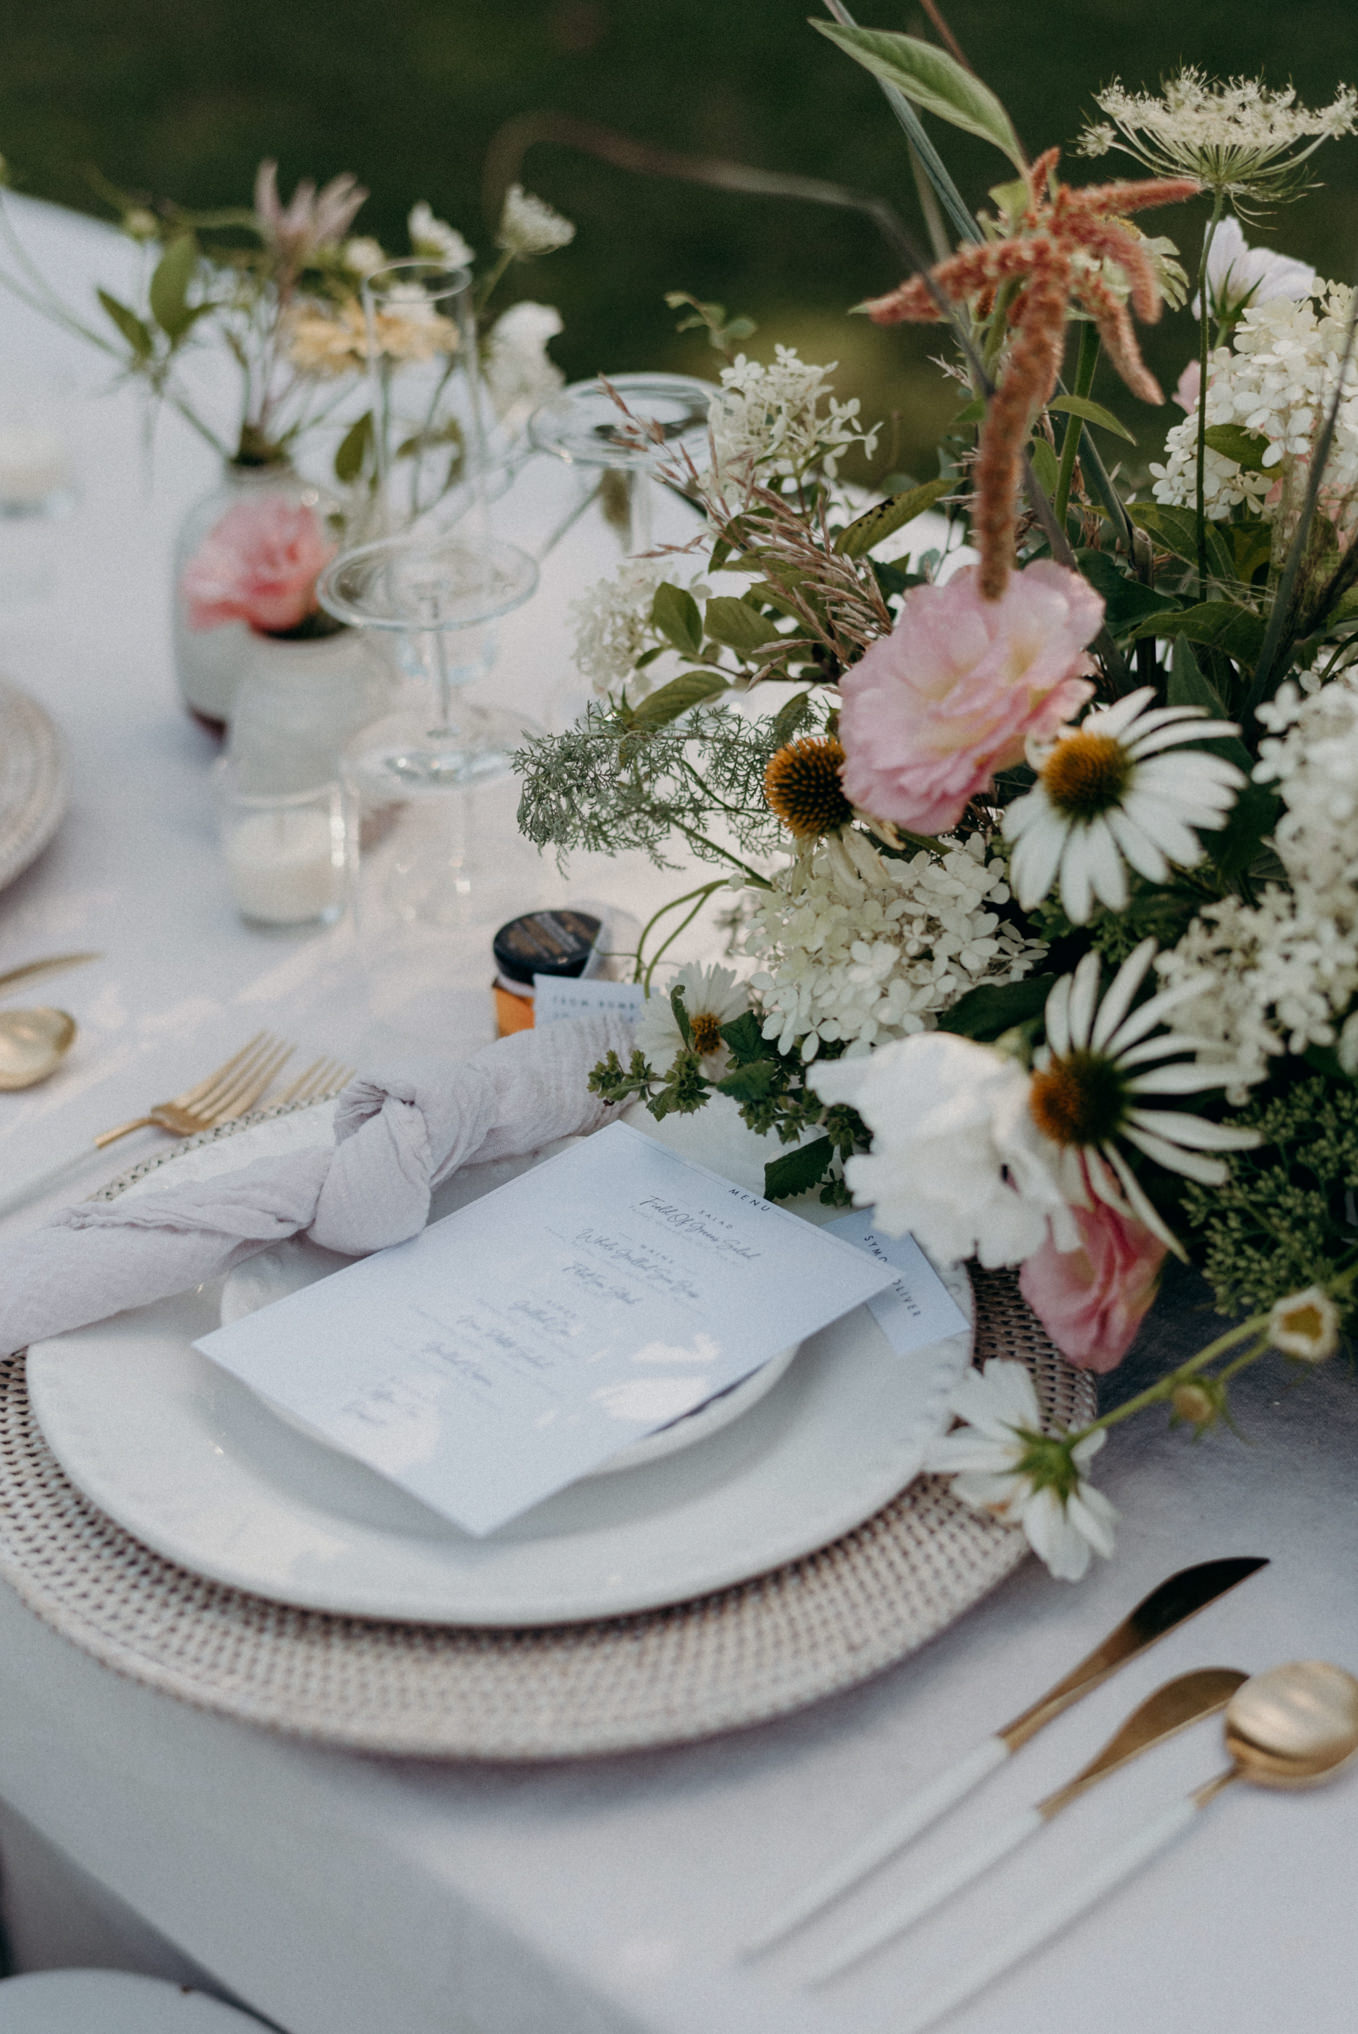 summery outdoor wedding reception table setting on white linens with white and pink flowers